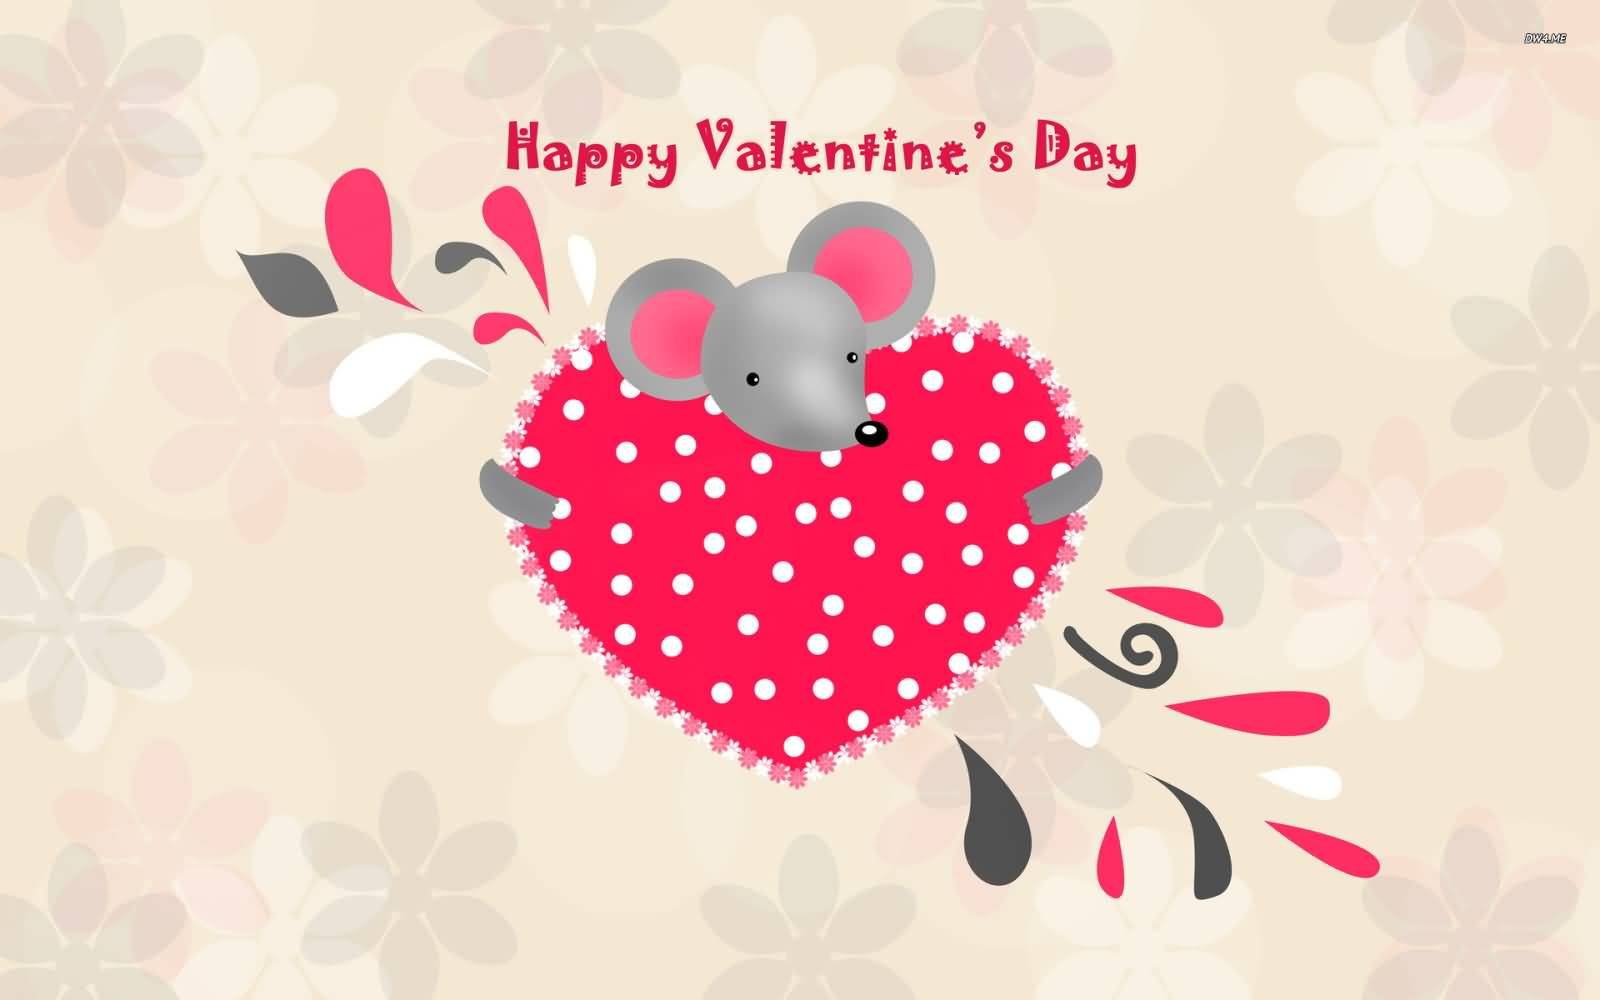 Happy Valentine's Day Mouse With Heart Wallpaper For - Cute Wallpaper Happy Valentines Day , HD Wallpaper & Backgrounds